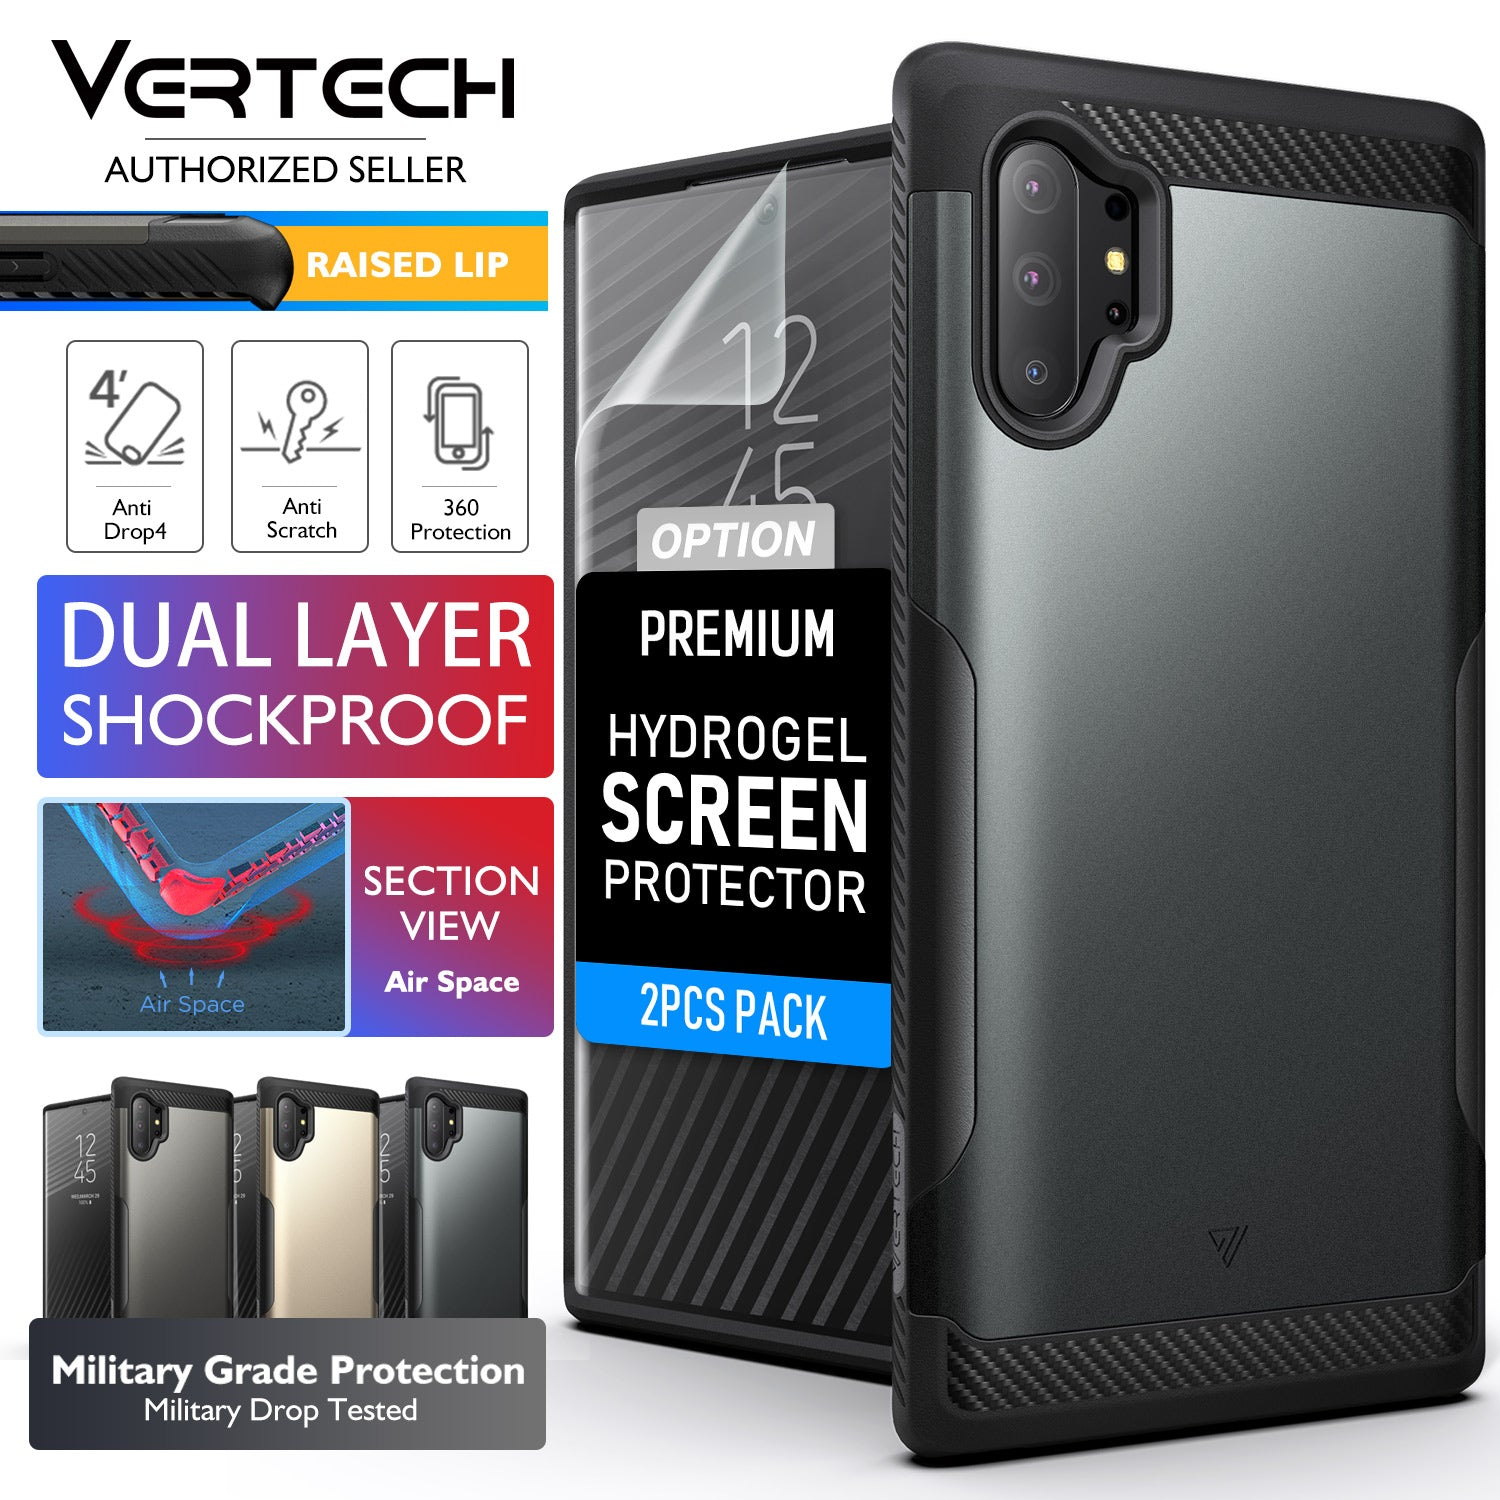 Galaxy Note 10 Plus Case VERTECH Heavy Duty Shockproof Cover for Samsung